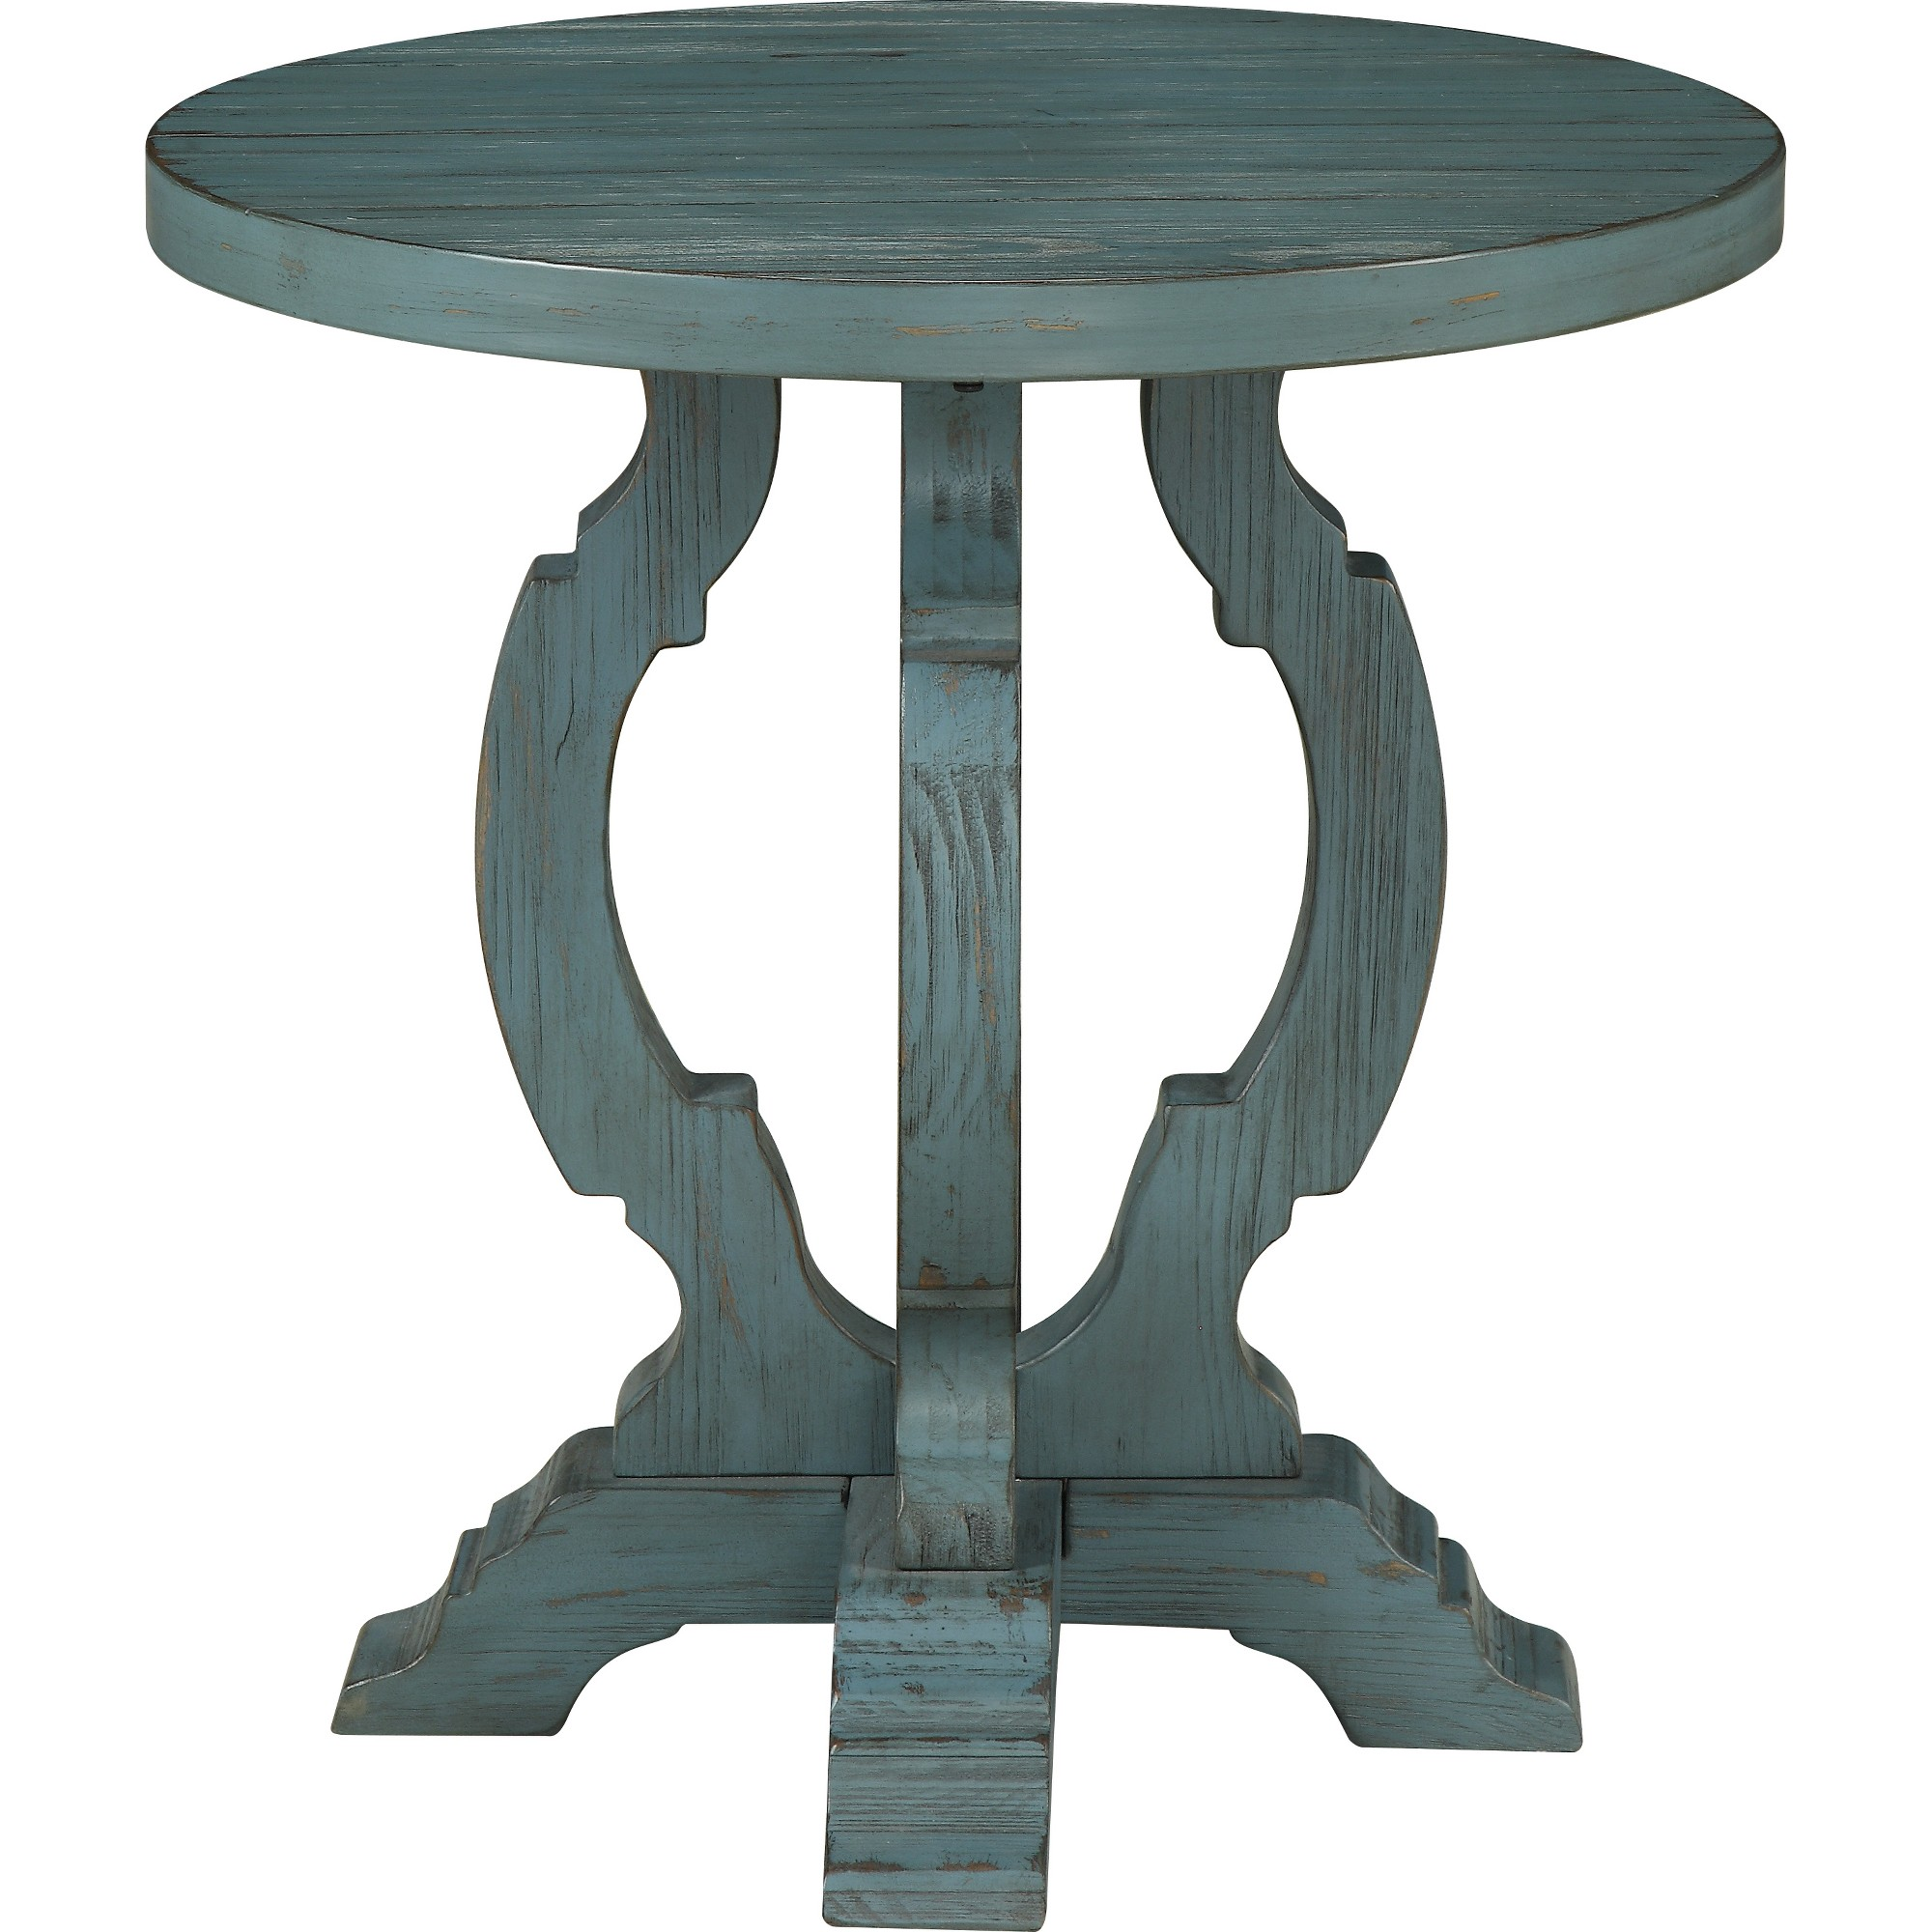 gainsboro gray accent table treasure trove end orchard park blue wood and metal furniture modern coffee decor white lamps vintage round college dorm stuff console with bench black